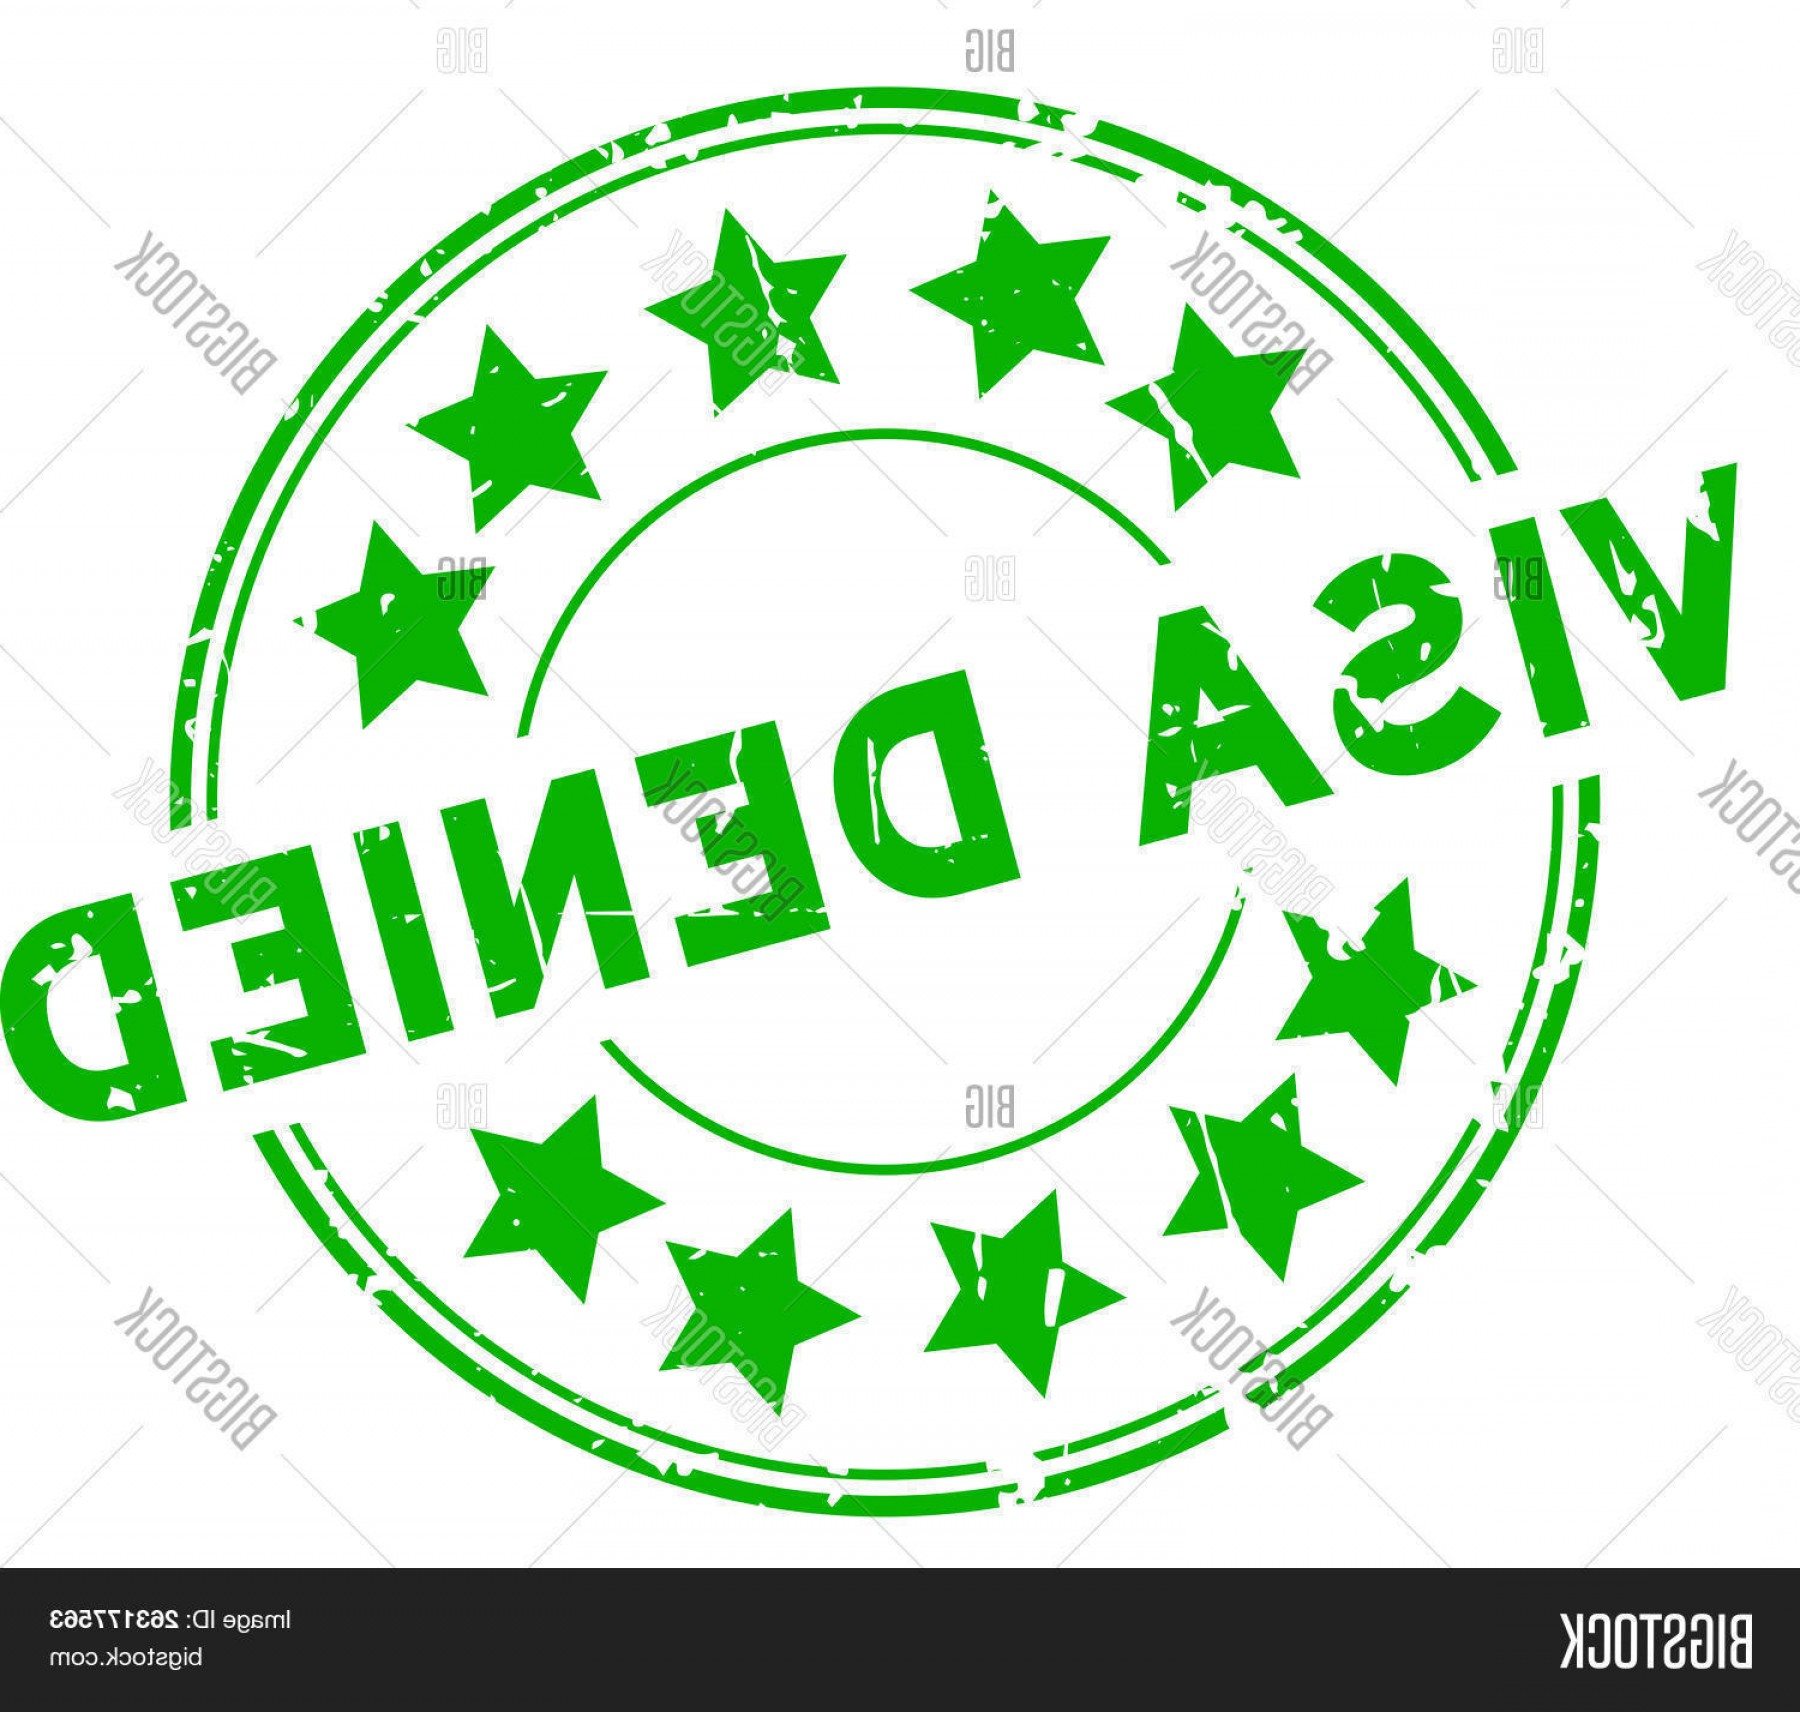 Visa Logo Vector Clip Art: Stock Vector Grunge Green Visa Denied With Star Icon Round Rubber Seal Stamp On White Background